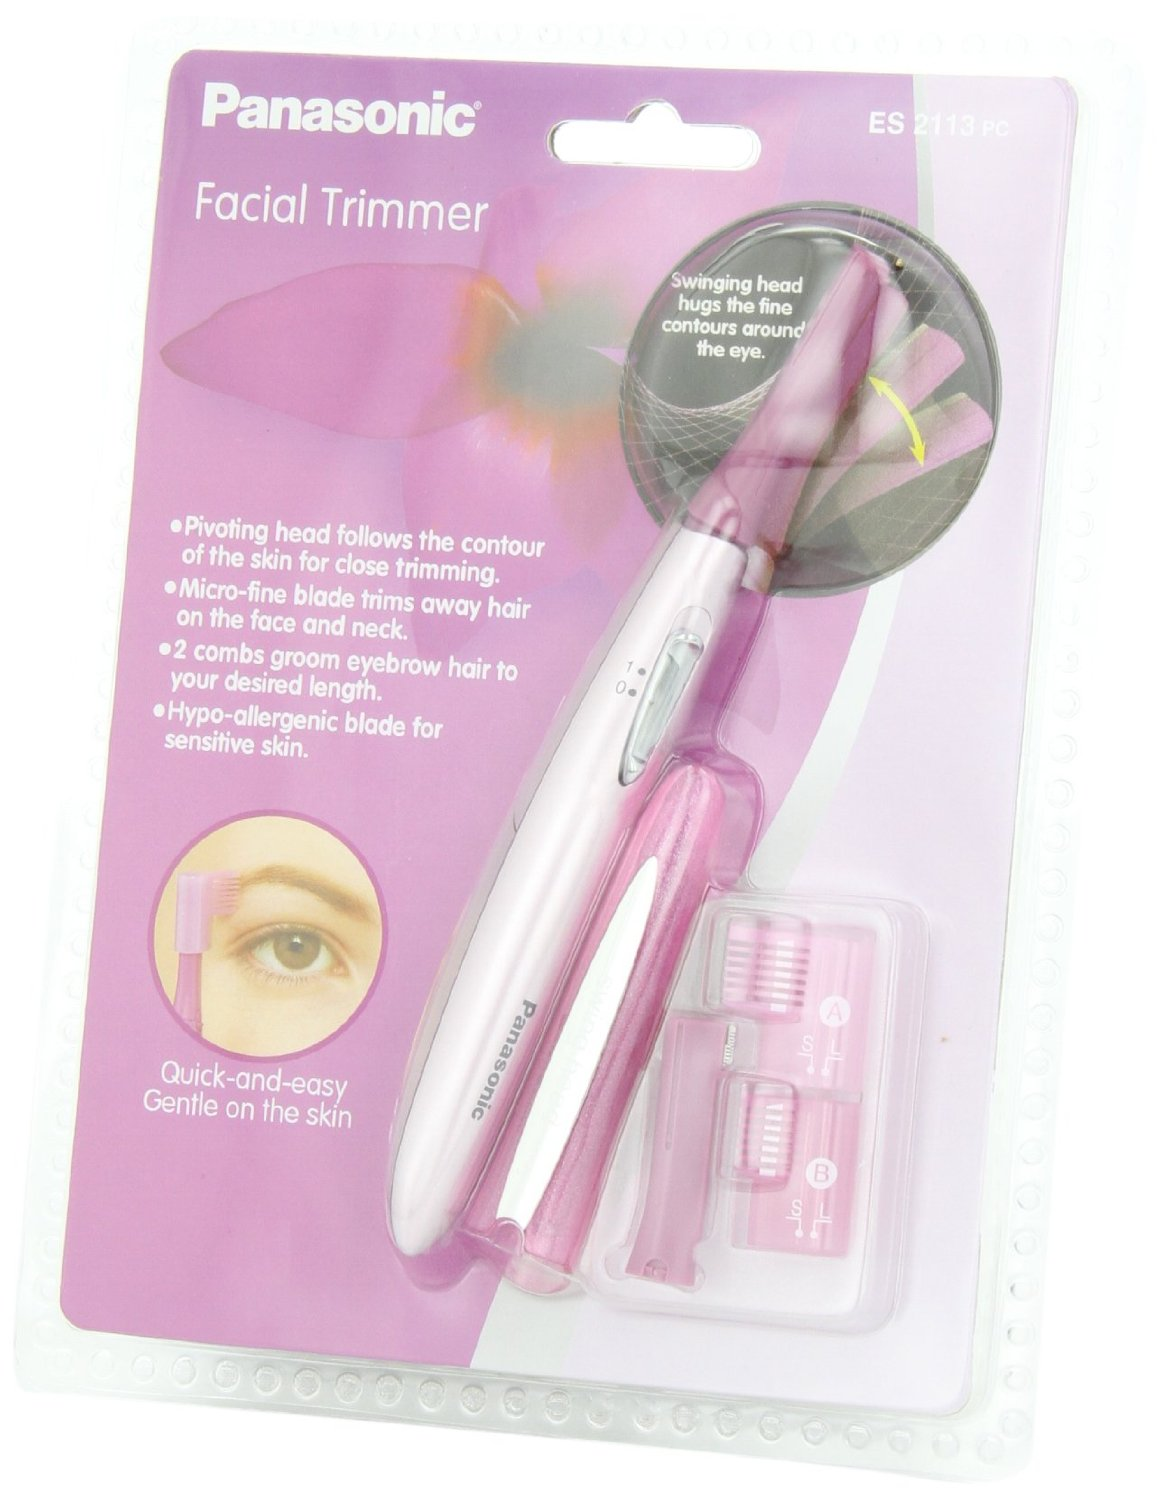 Panasonic ES2113PC Pivoting Facial Trimmer